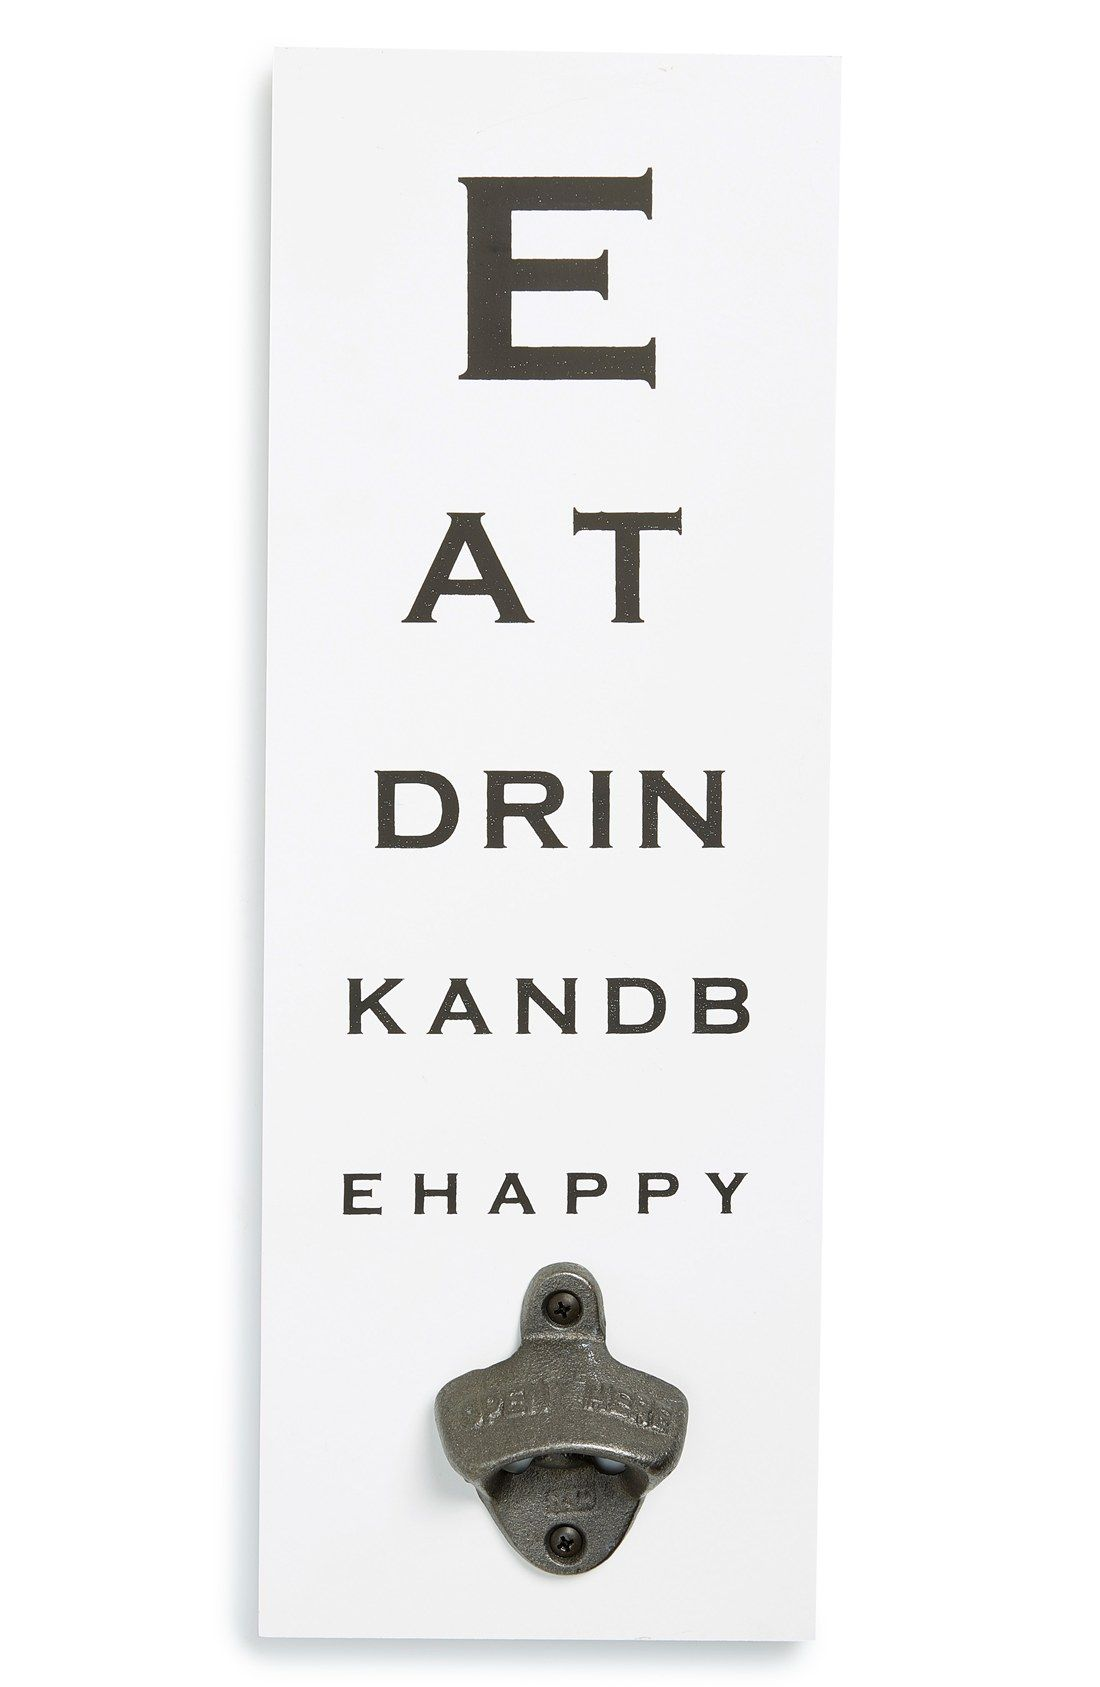 Melannco eat drink and be happy eye chart wall bottle opener melannco eat drink and be happy eye chart wall bottle opener nvjuhfo Image collections